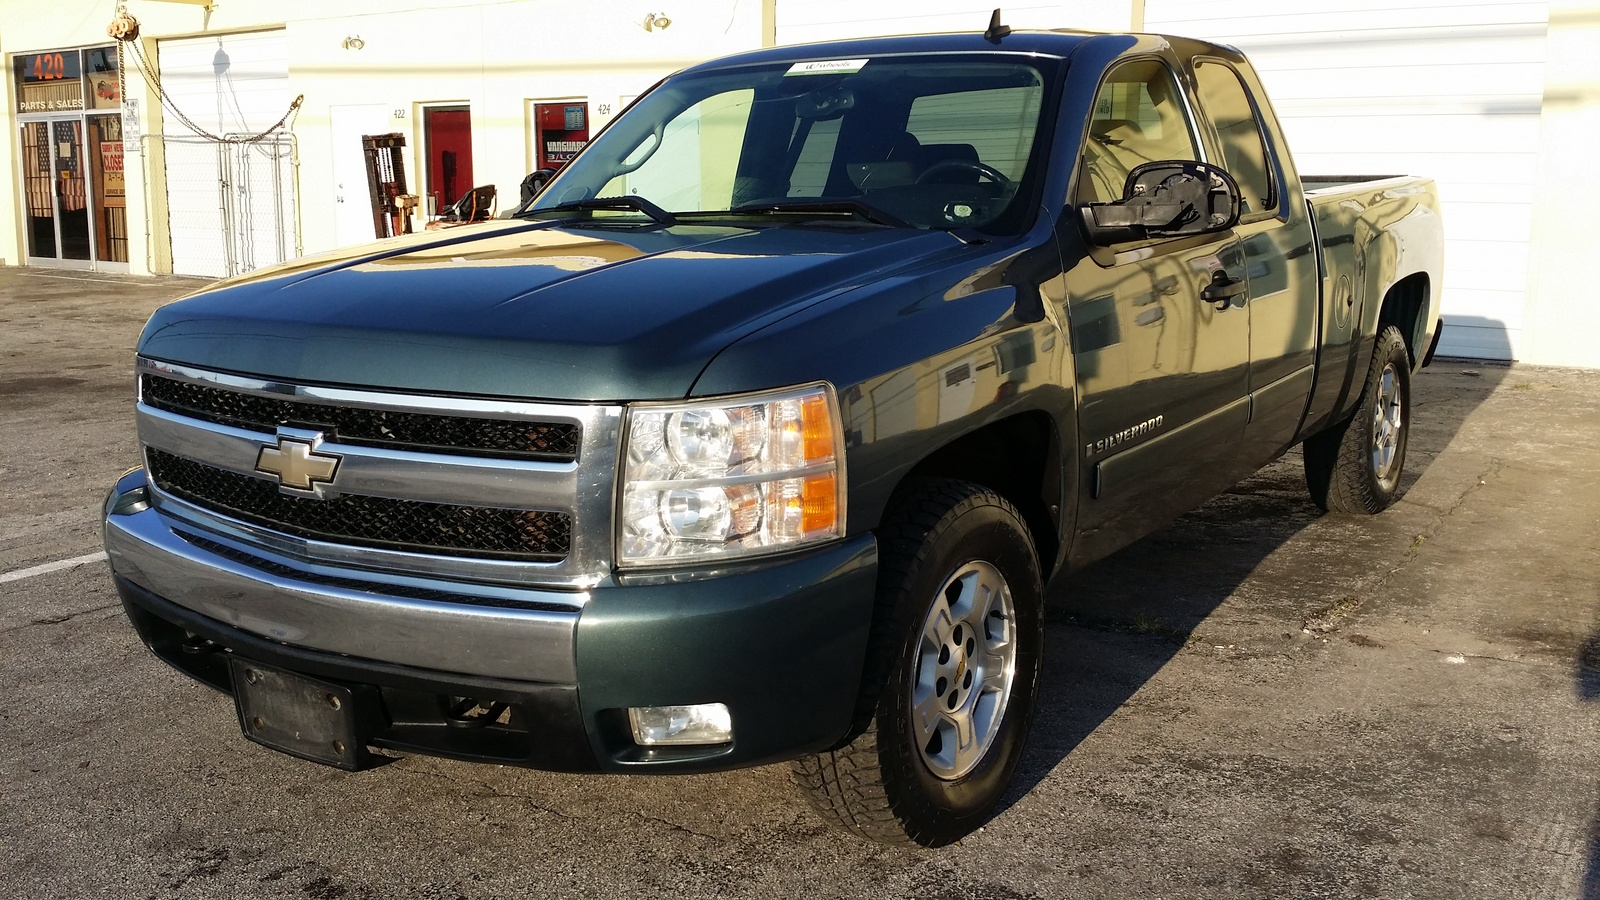 2007 chevrolet silverado 1500 lt1 ext cab 4wd picture exterior. Cars Review. Best American Auto & Cars Review